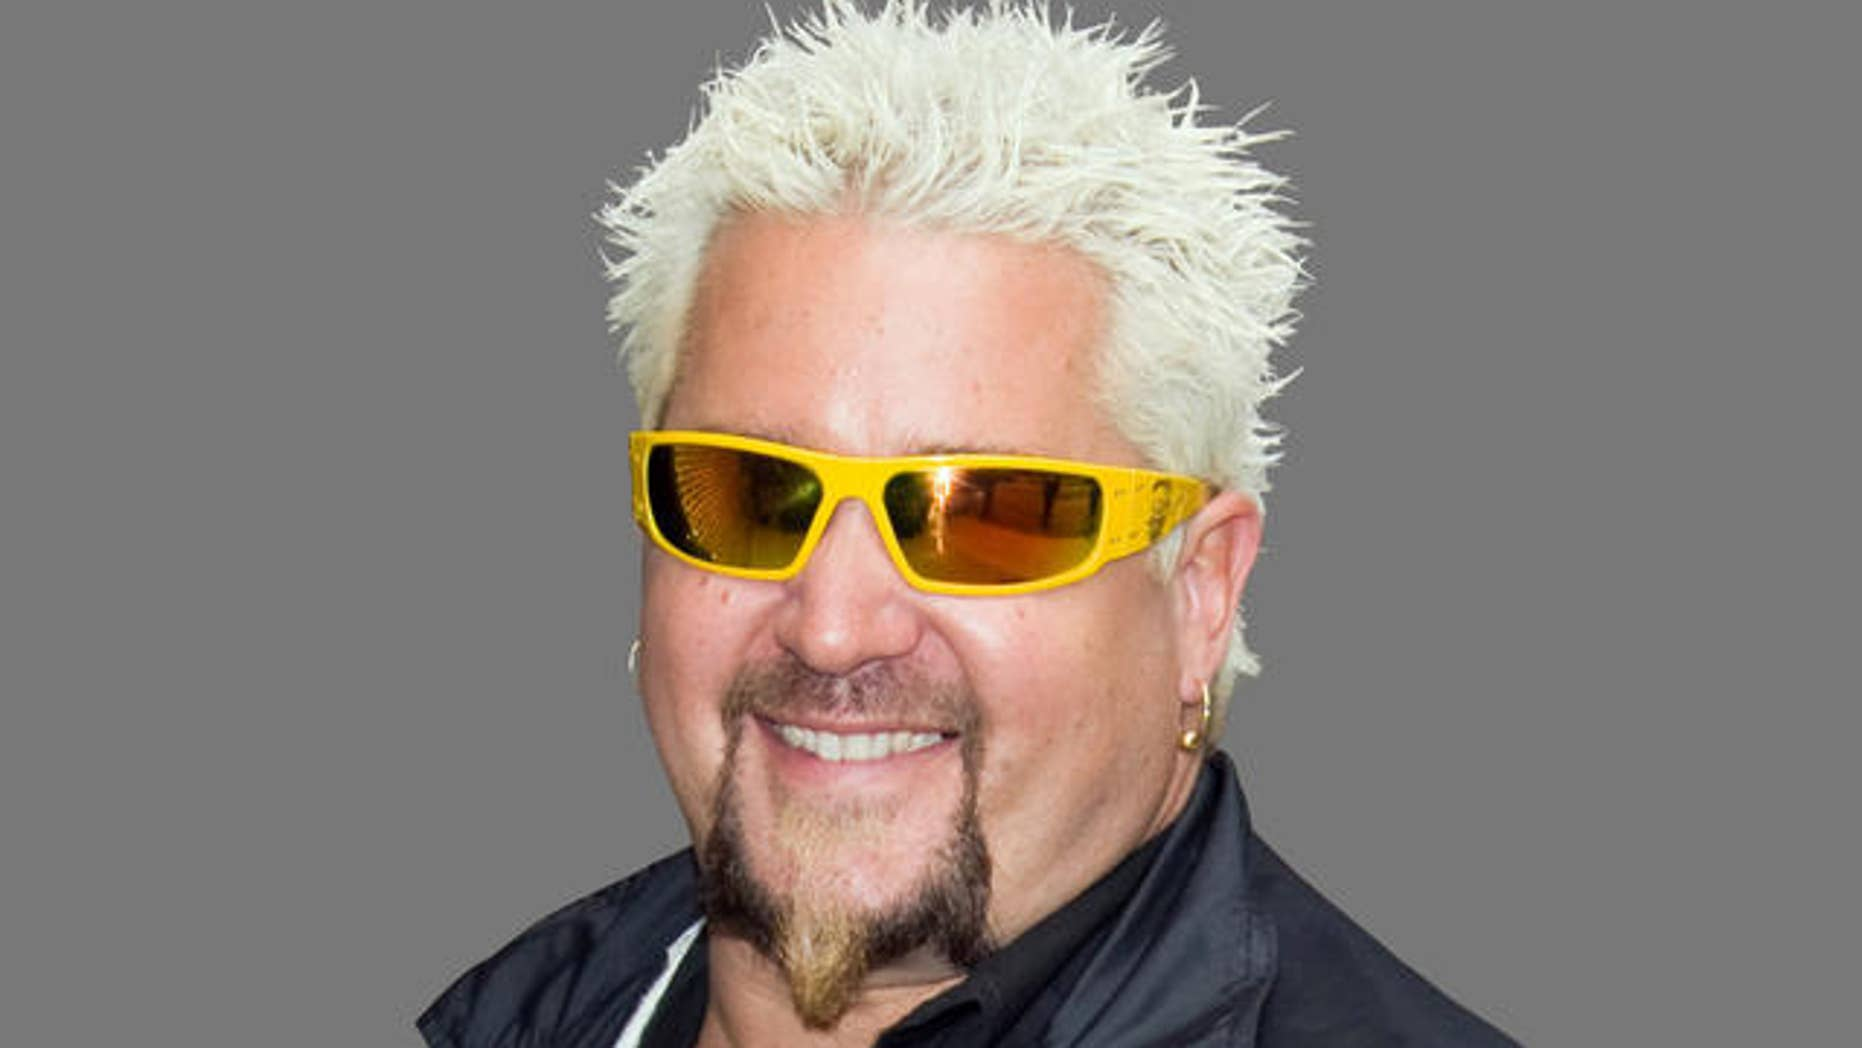 Guy Fieri in New York, April 14, 2009. (AP Photo/Charles Sykes)